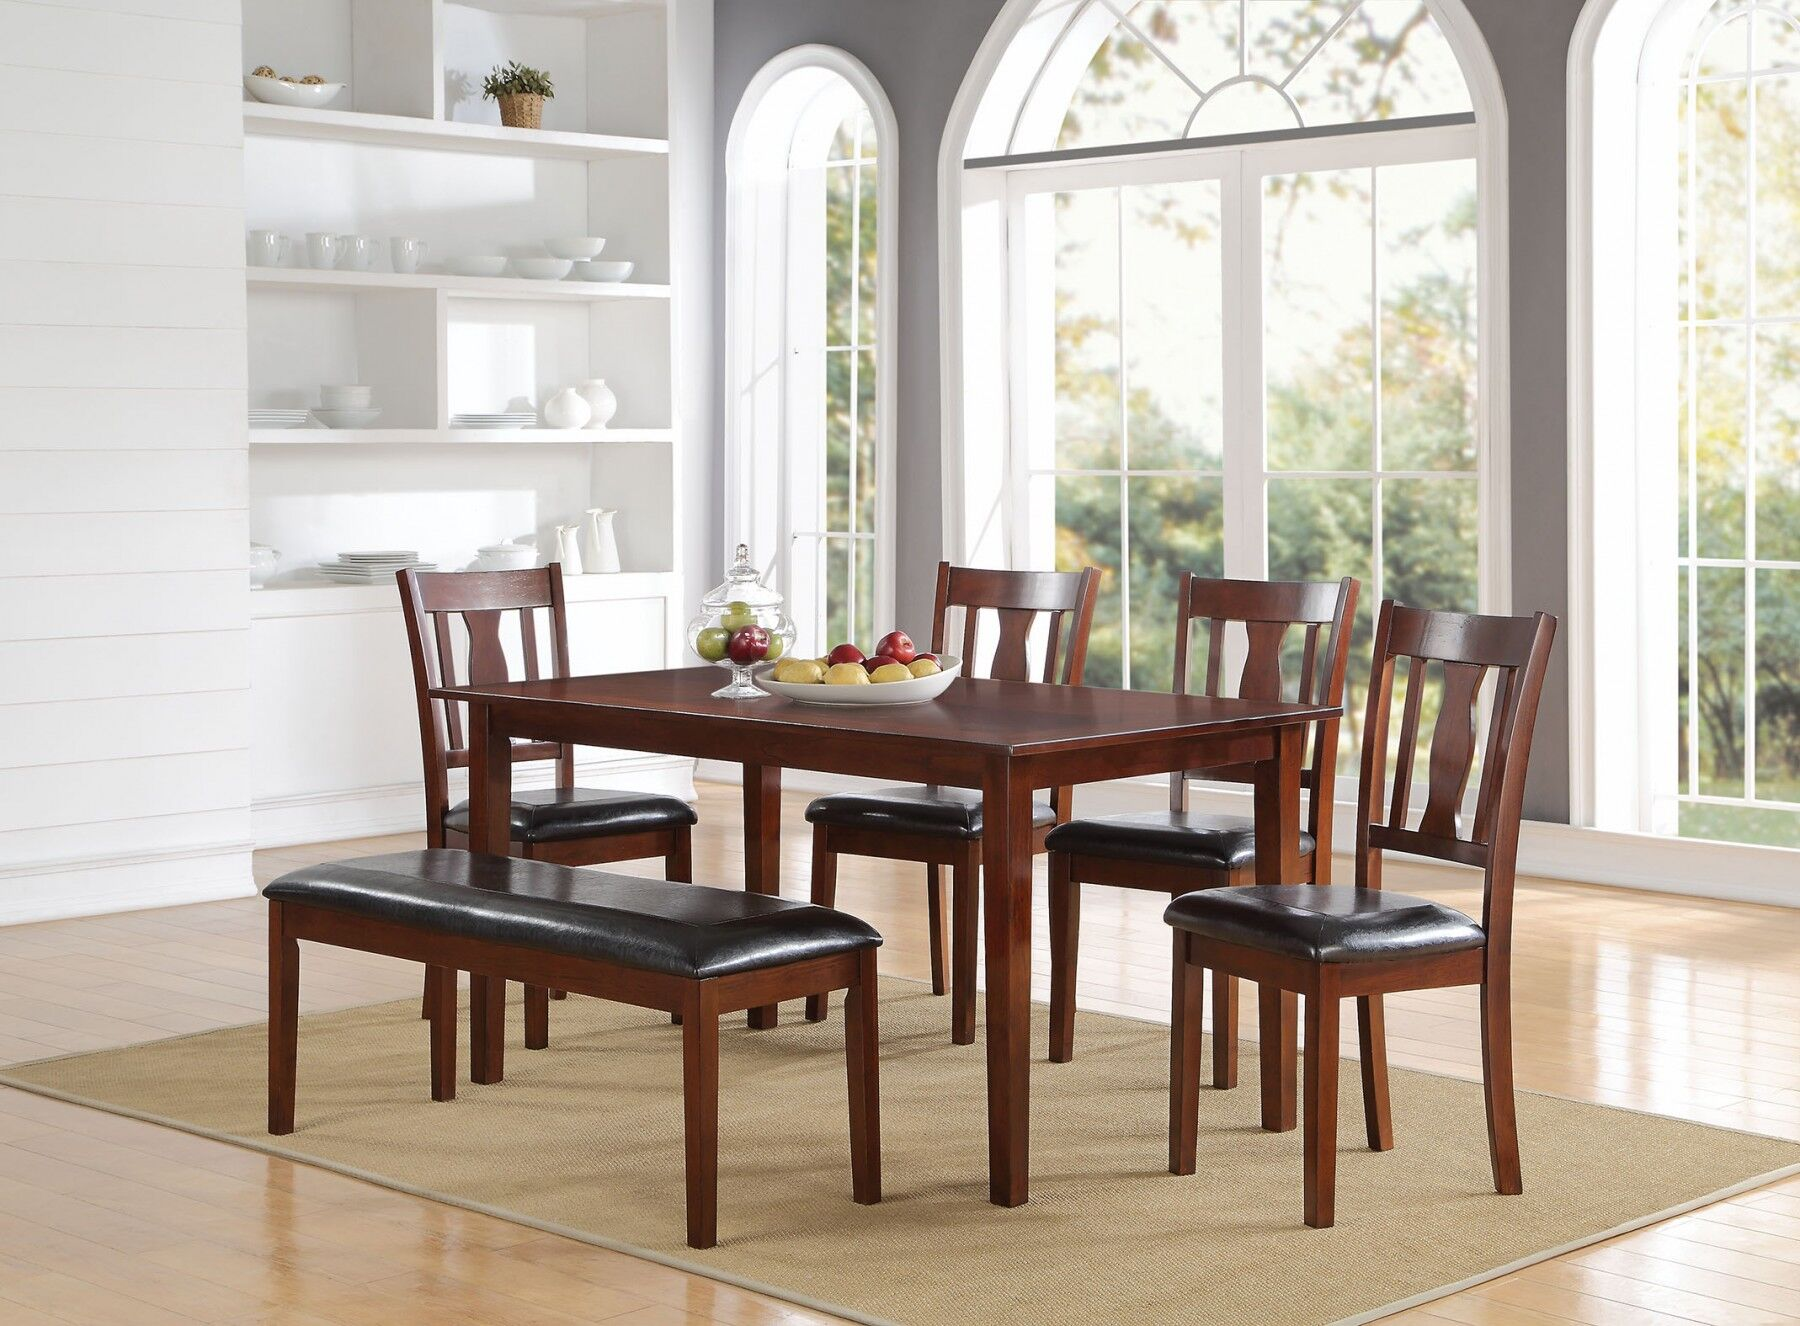 Dining Table Sets Eddie 6 Piece Solid Wood Dining Set April 2019